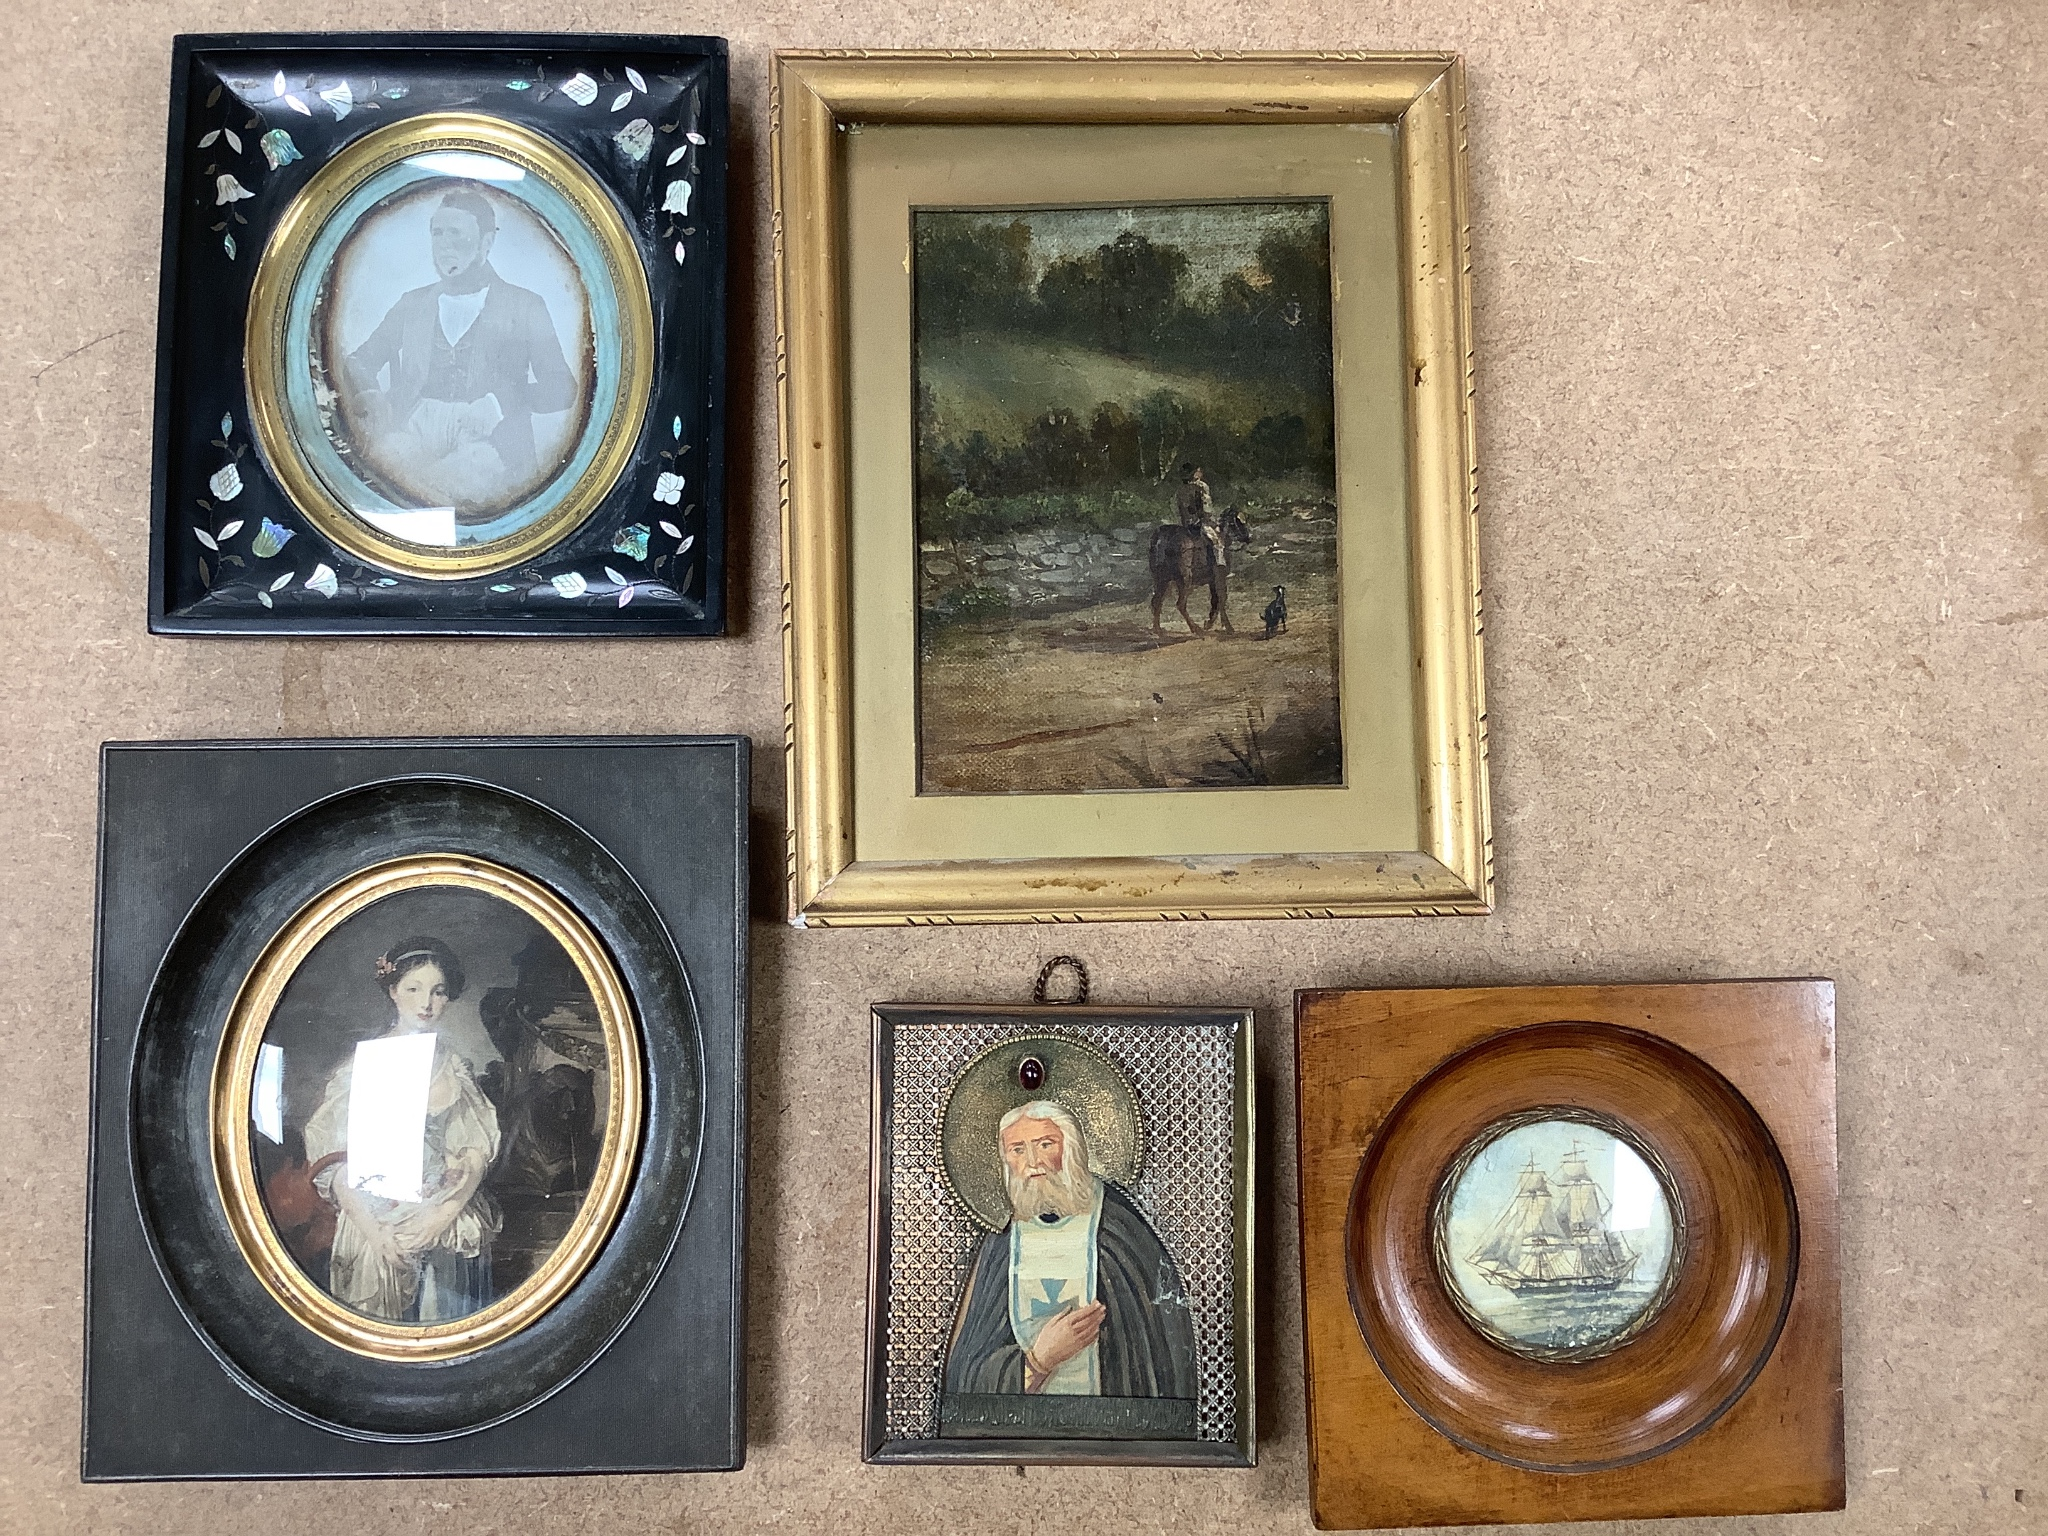 A 19th century Daguerreotype portrait of a gentleman, together with a small Russian painted icon, a